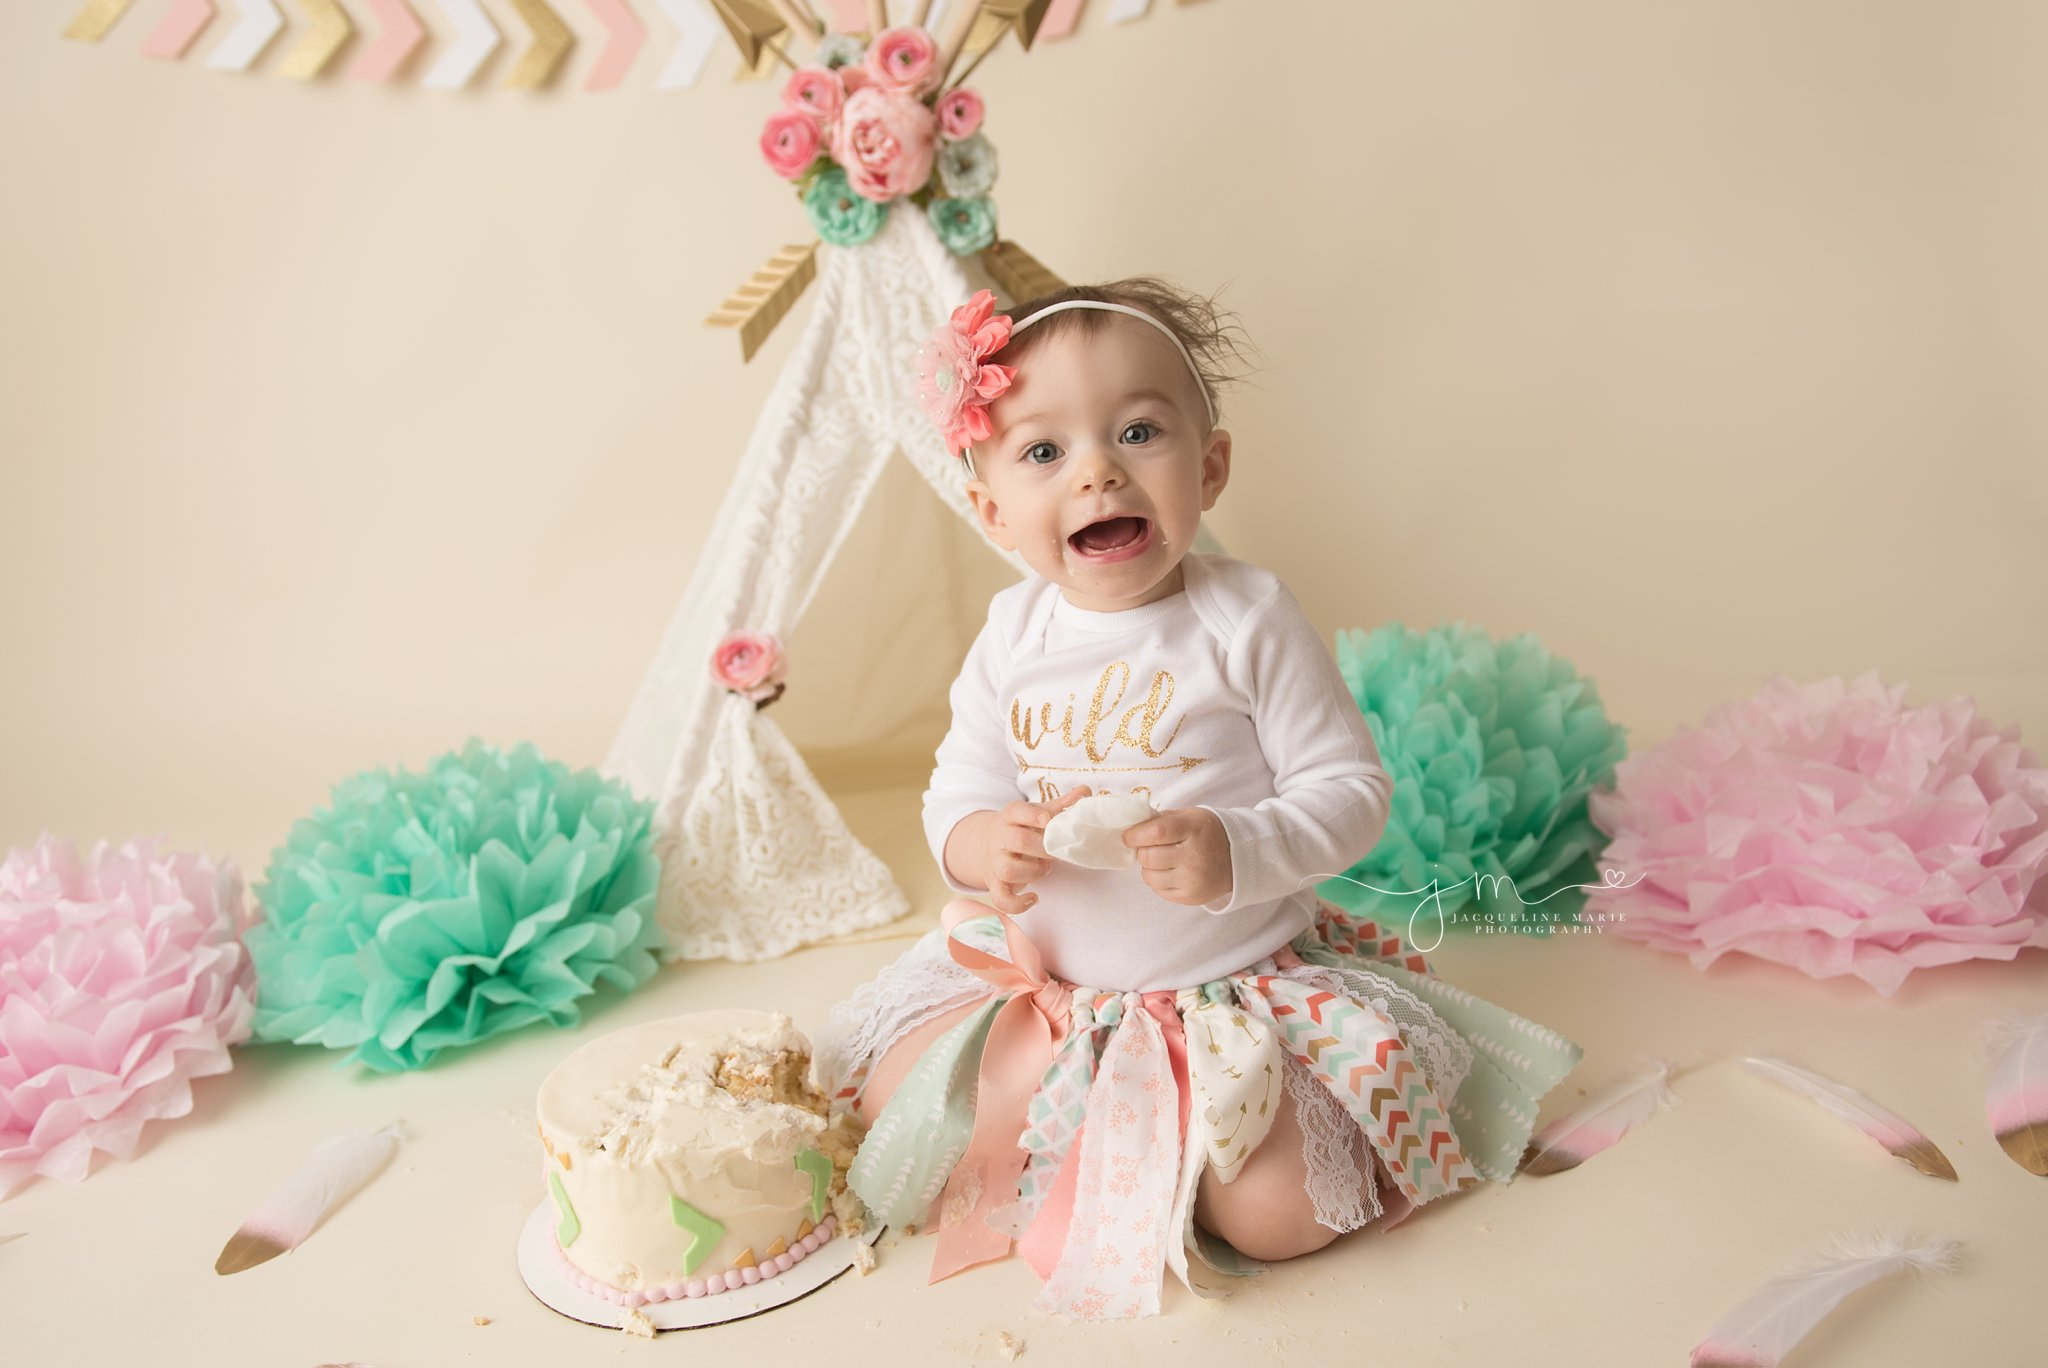 1 year old baby girl enjoyed her cake smash and put icing in her hair in columbus ohio for her first birthday cake smash session